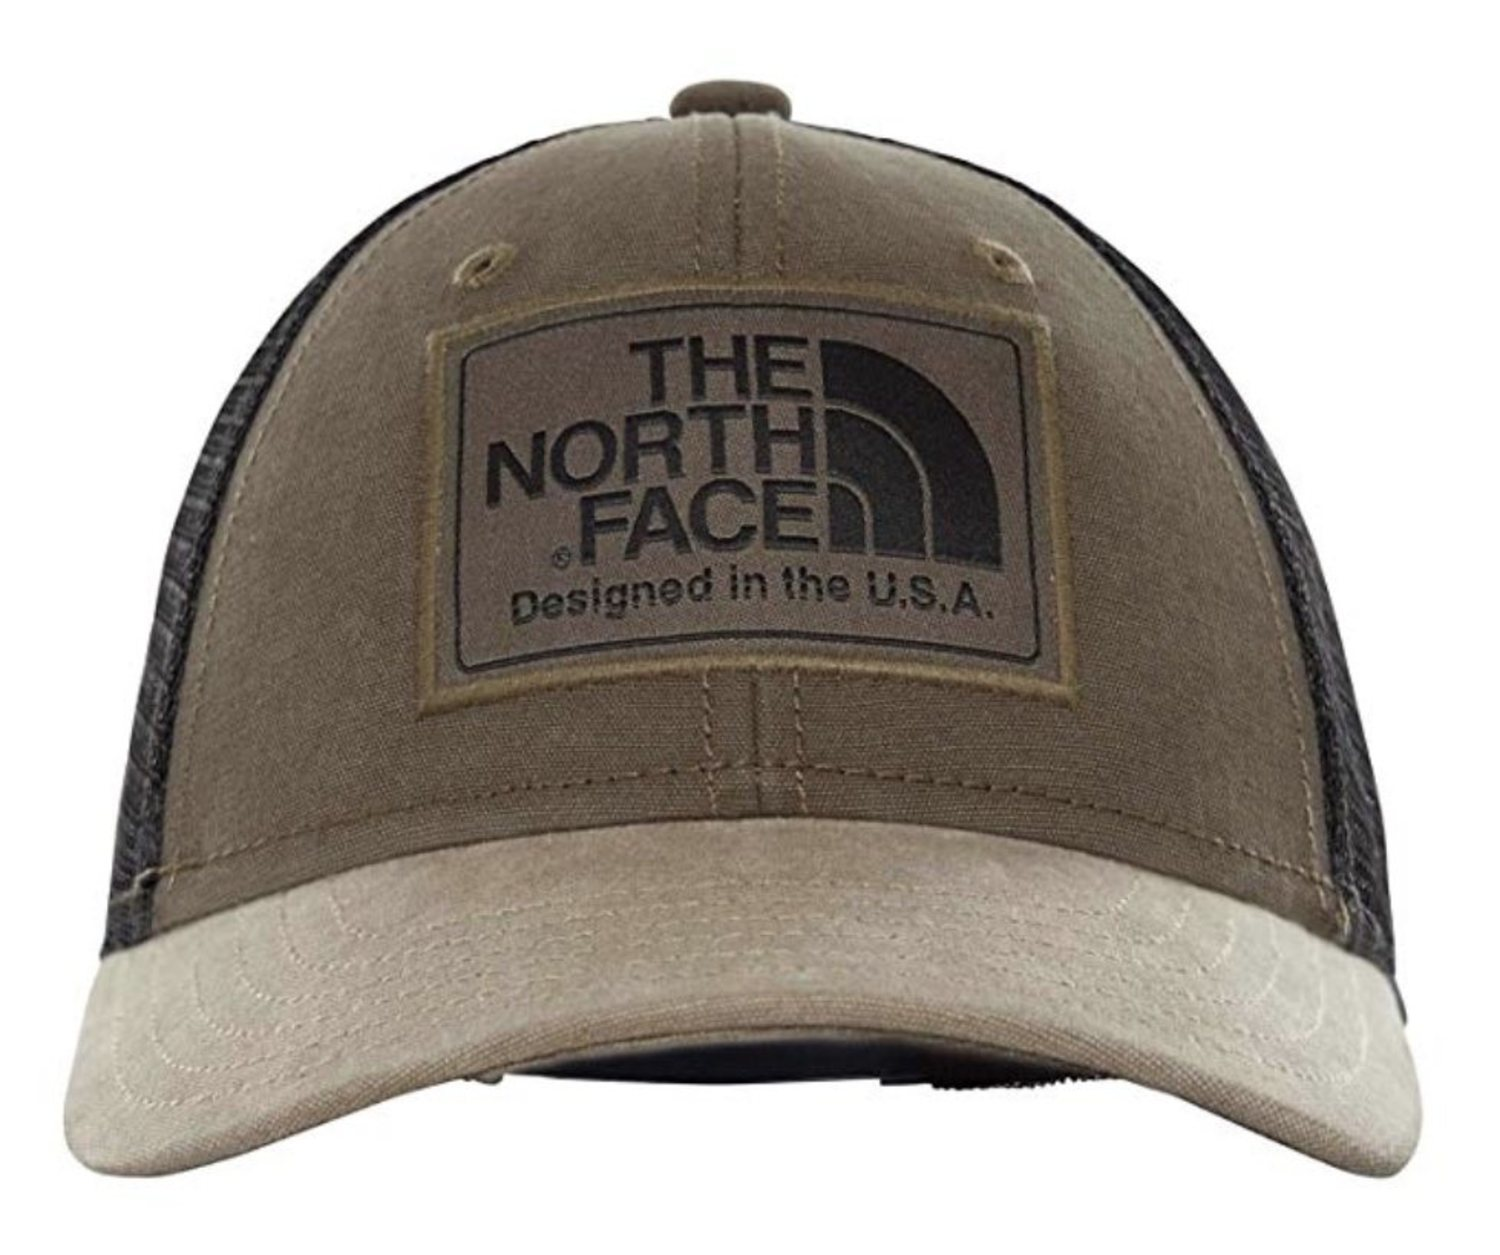 Gorra trucker con acabado retro de la marca The North Face.